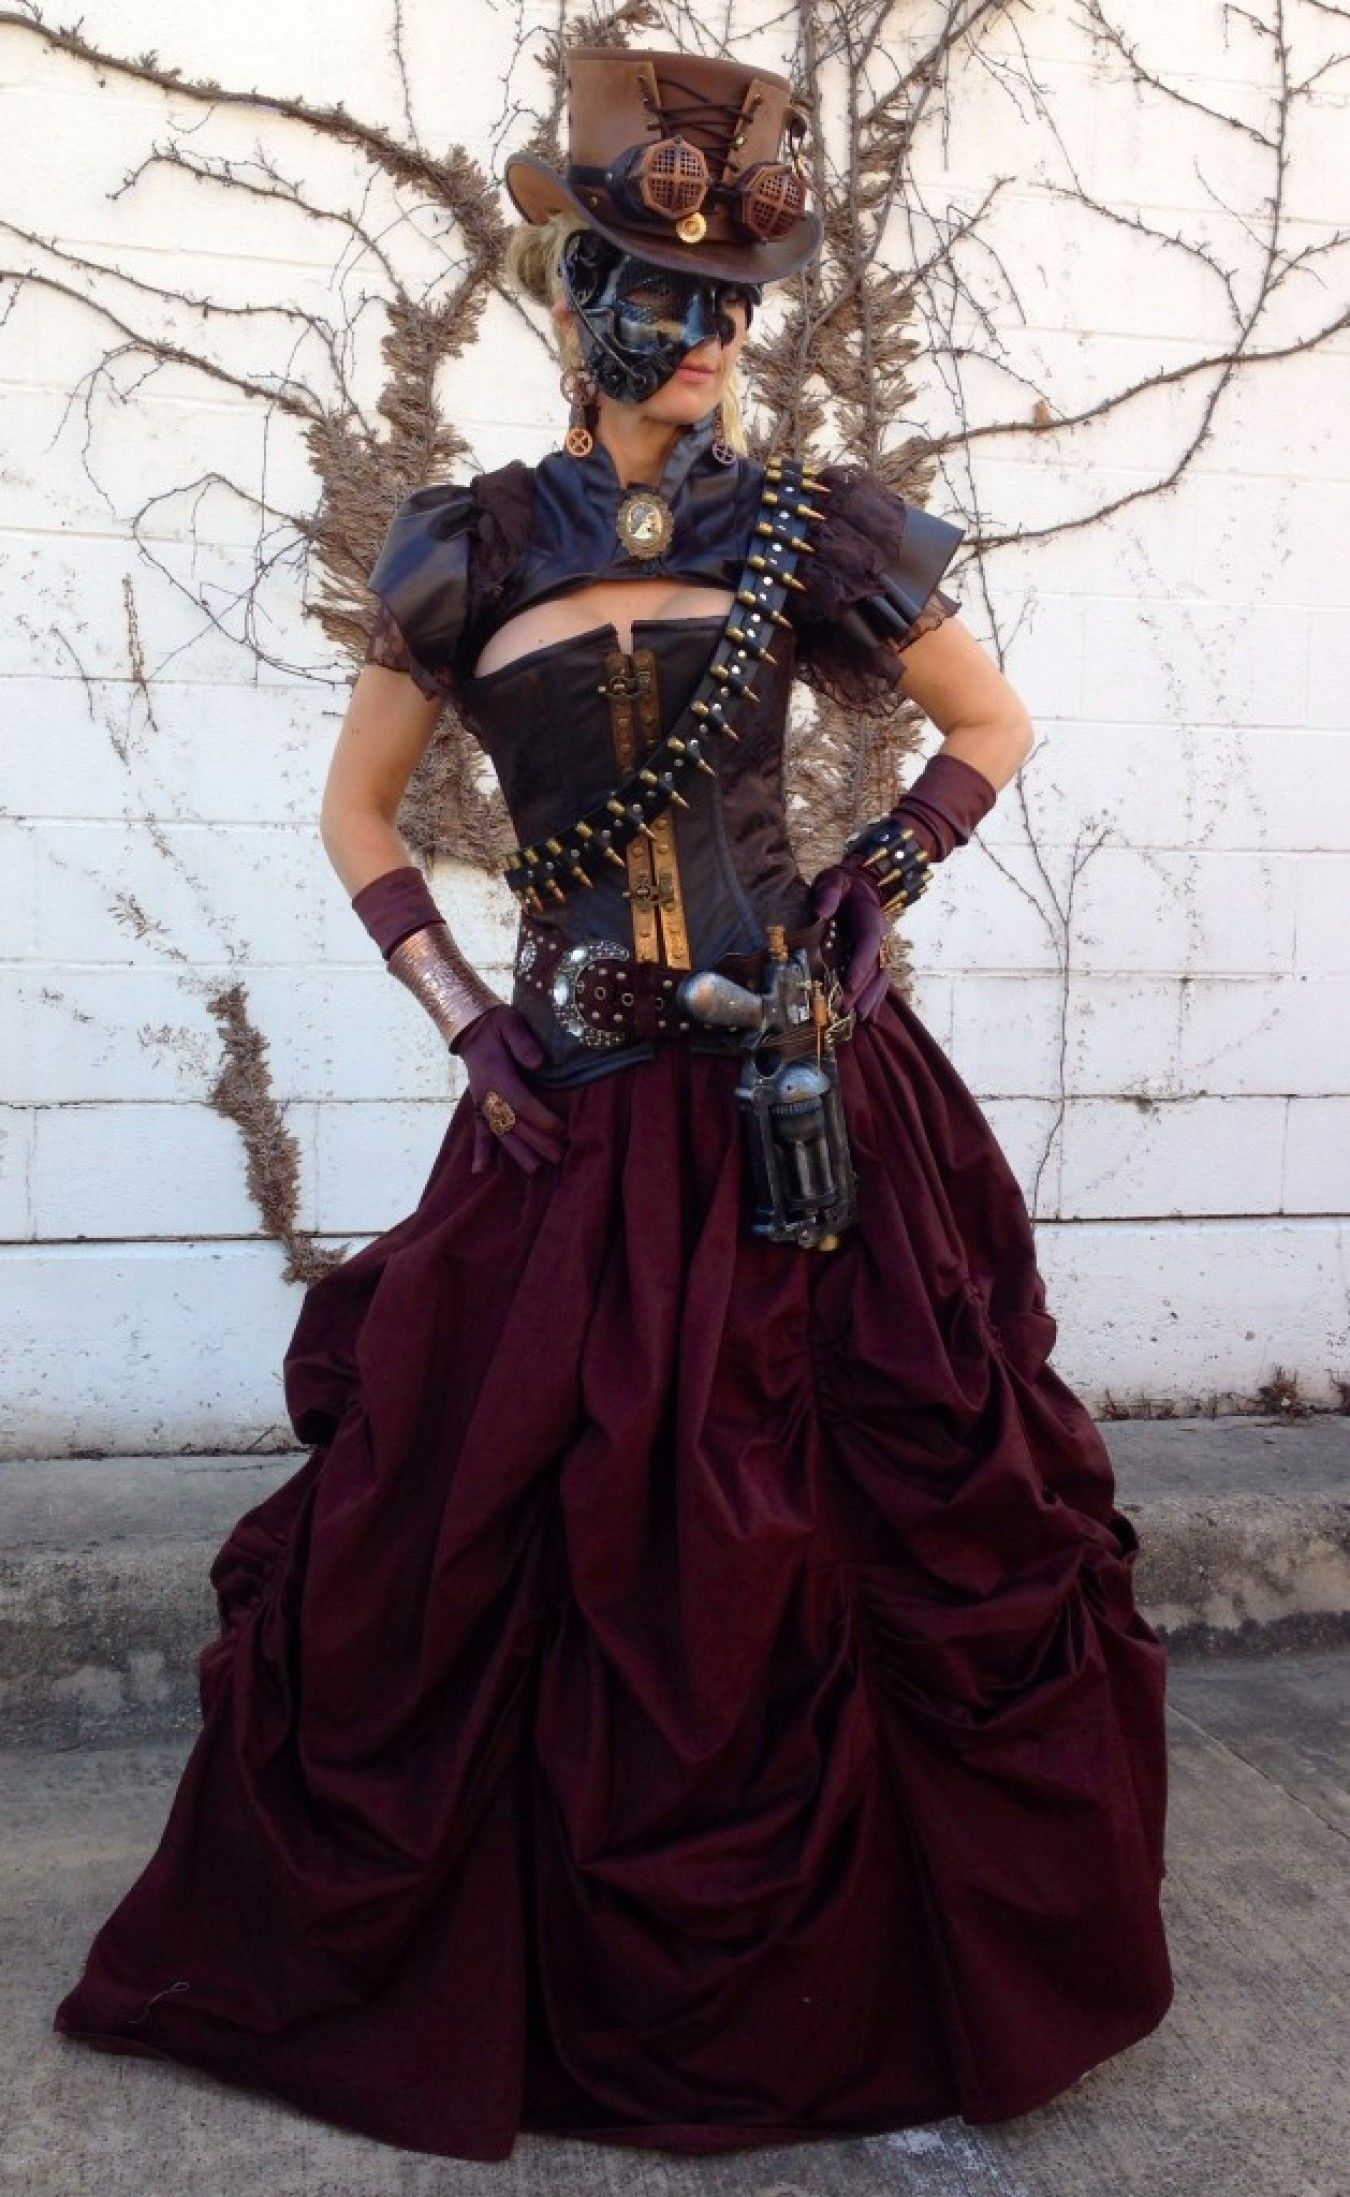 Ladies Steampunk Fashion Attire, Quality Steampunk Corsets, Leather Steampunk Corset Top Hats, Steampunk Jewelry & Weapons